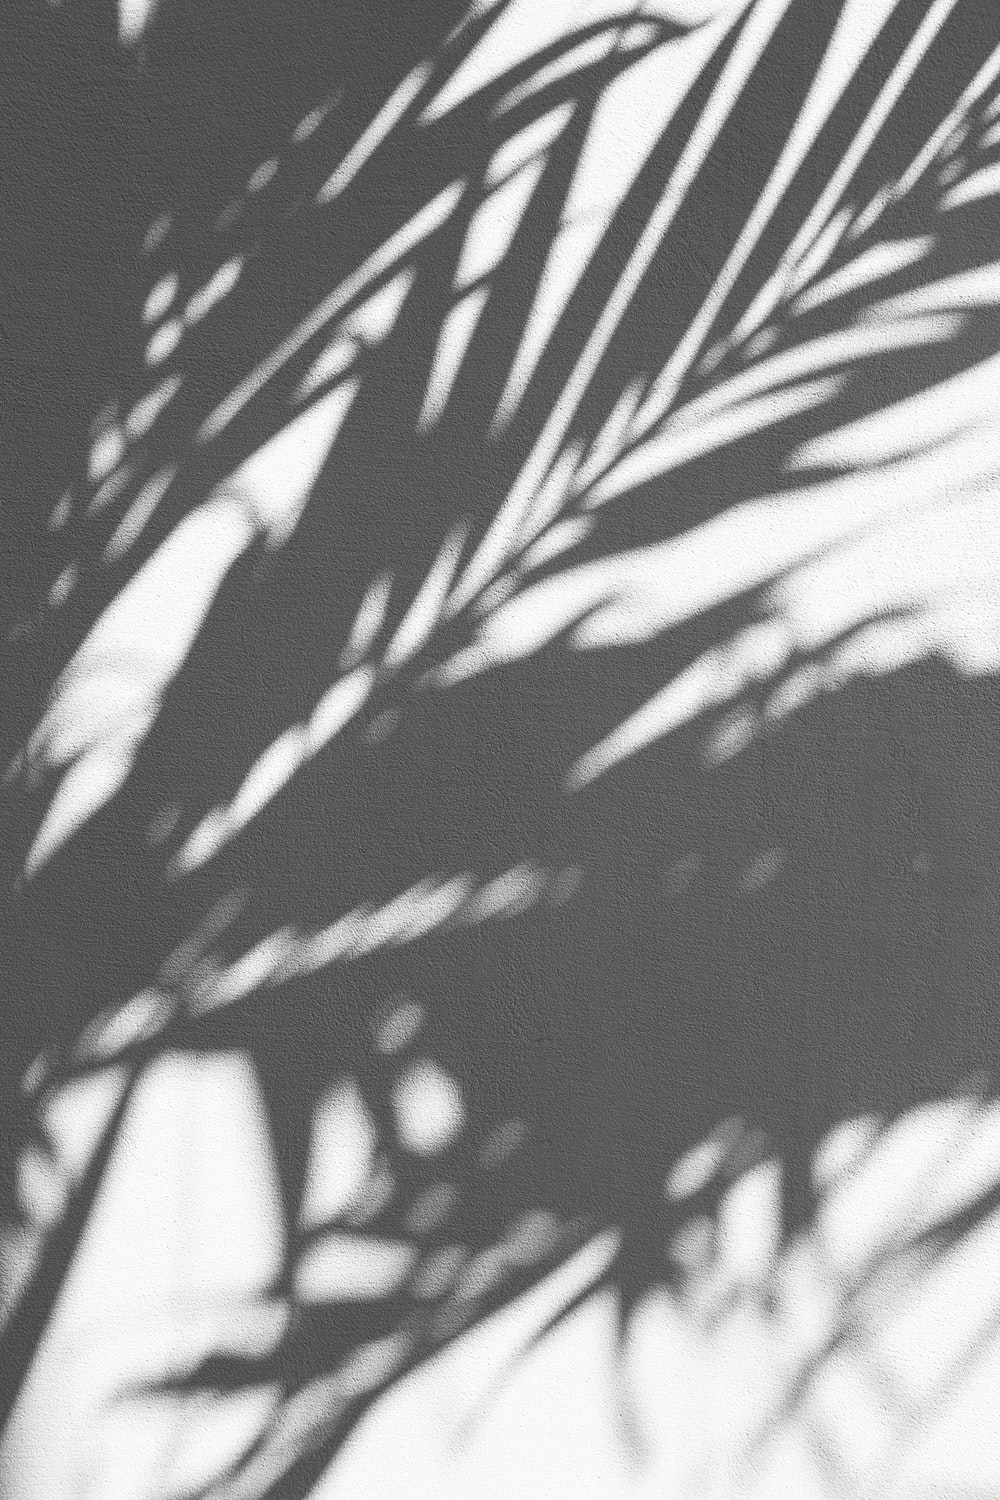 750 Black Aesthetic Pictures Download Free Images On Unsplash